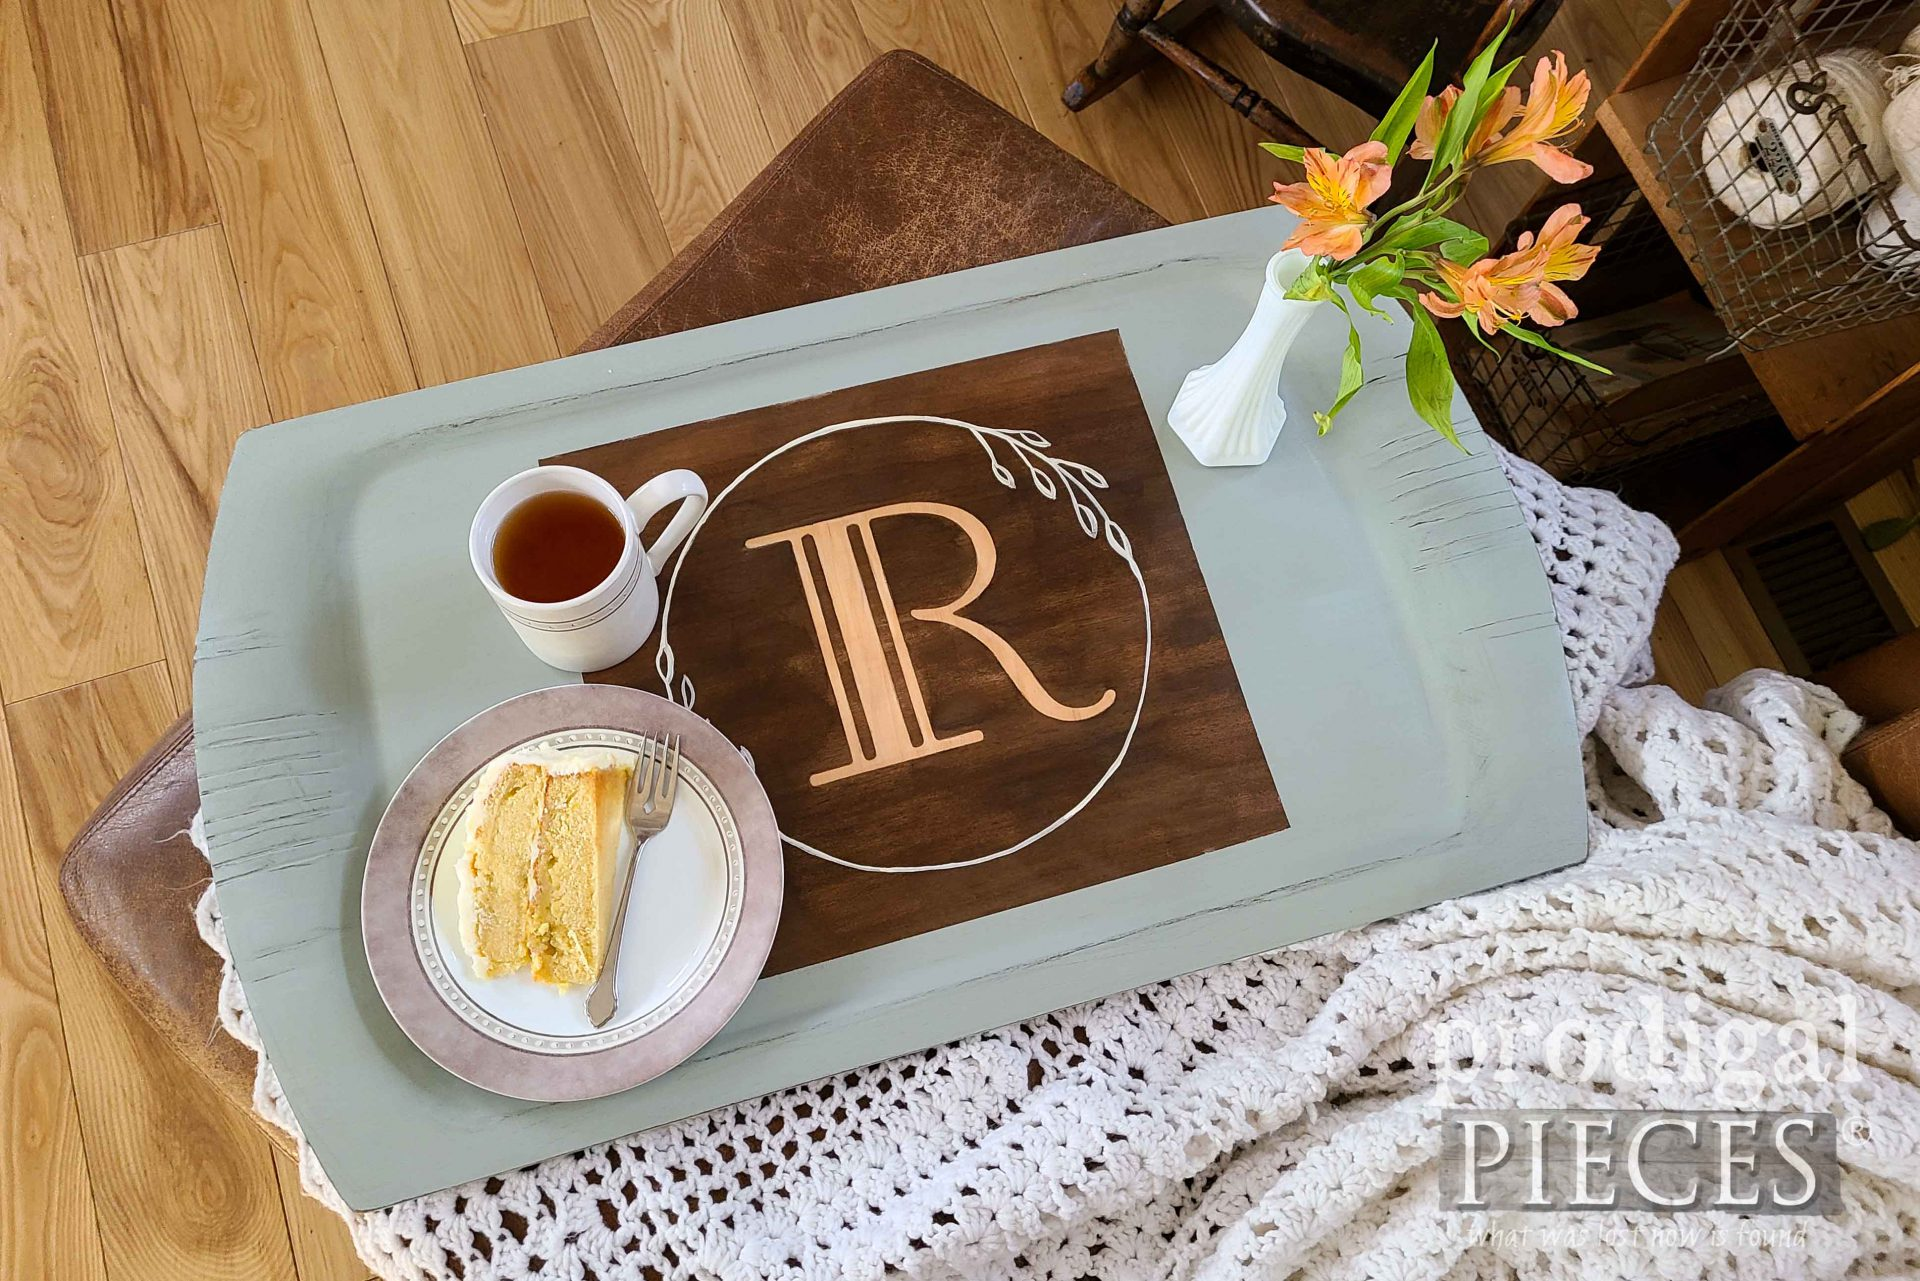 Vintage Monogram Wooden Tray with Makeover by Larissa of Prodigal Pieces | prodigalpieces.com #prodigalpieces #farmhouse #diy #home